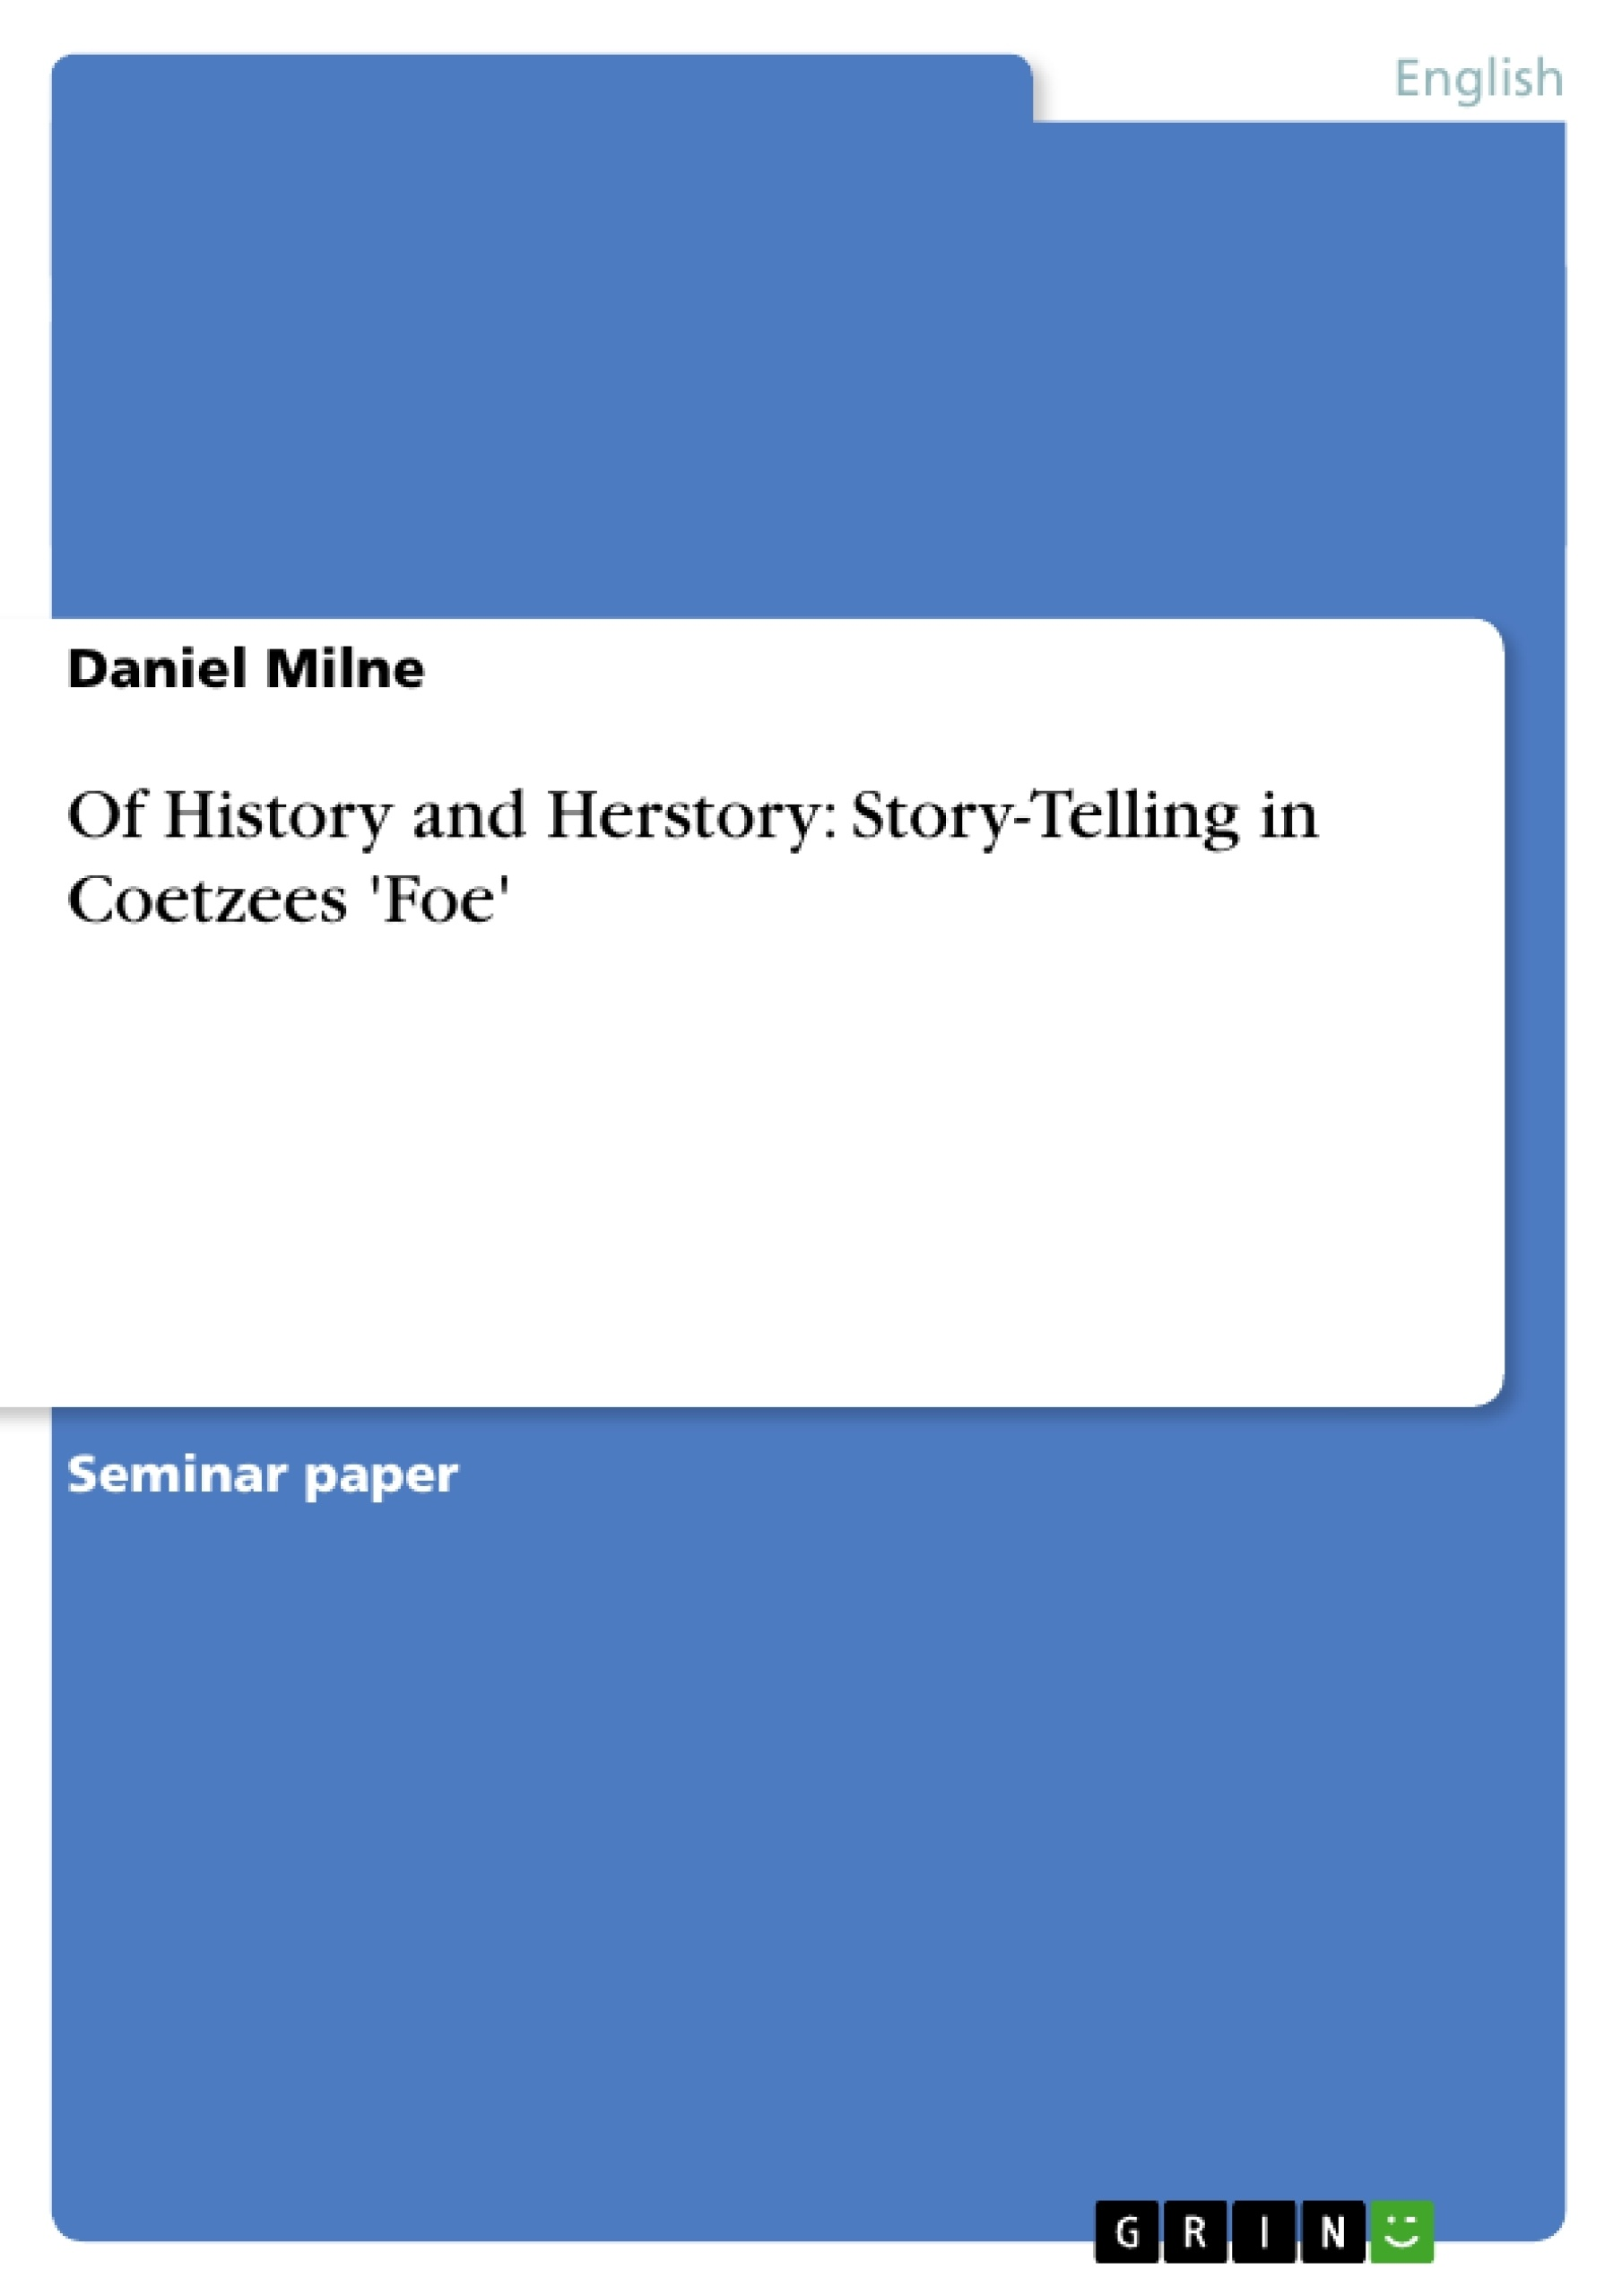 Title: Of History and Herstory: Story-Telling in Coetzees 'Foe'